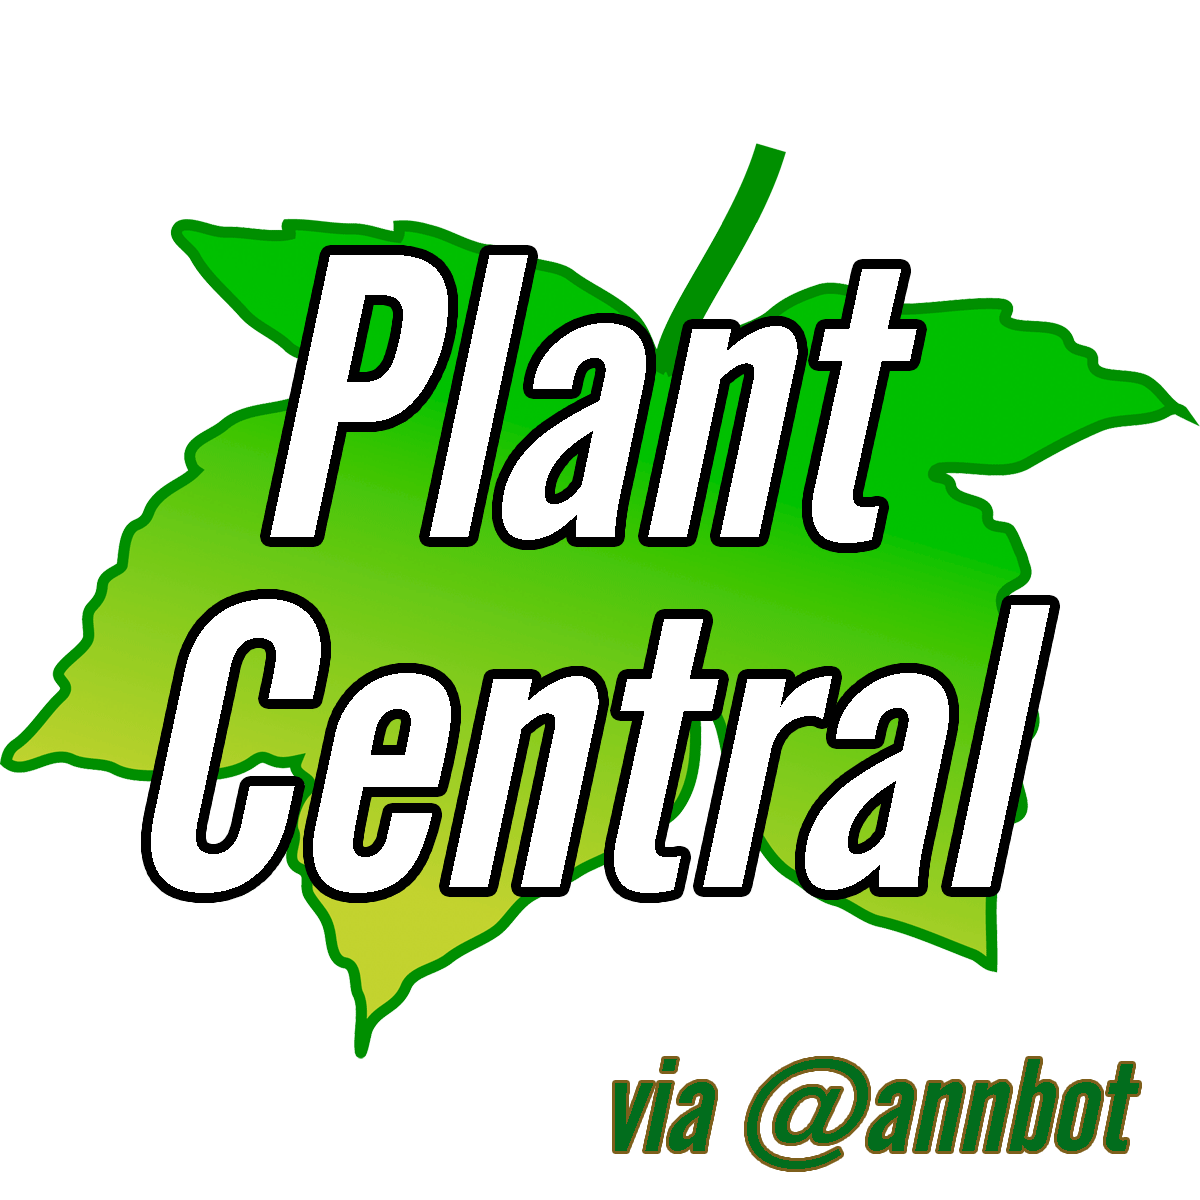 Keeping links flowing, @PlantCentral gets updated